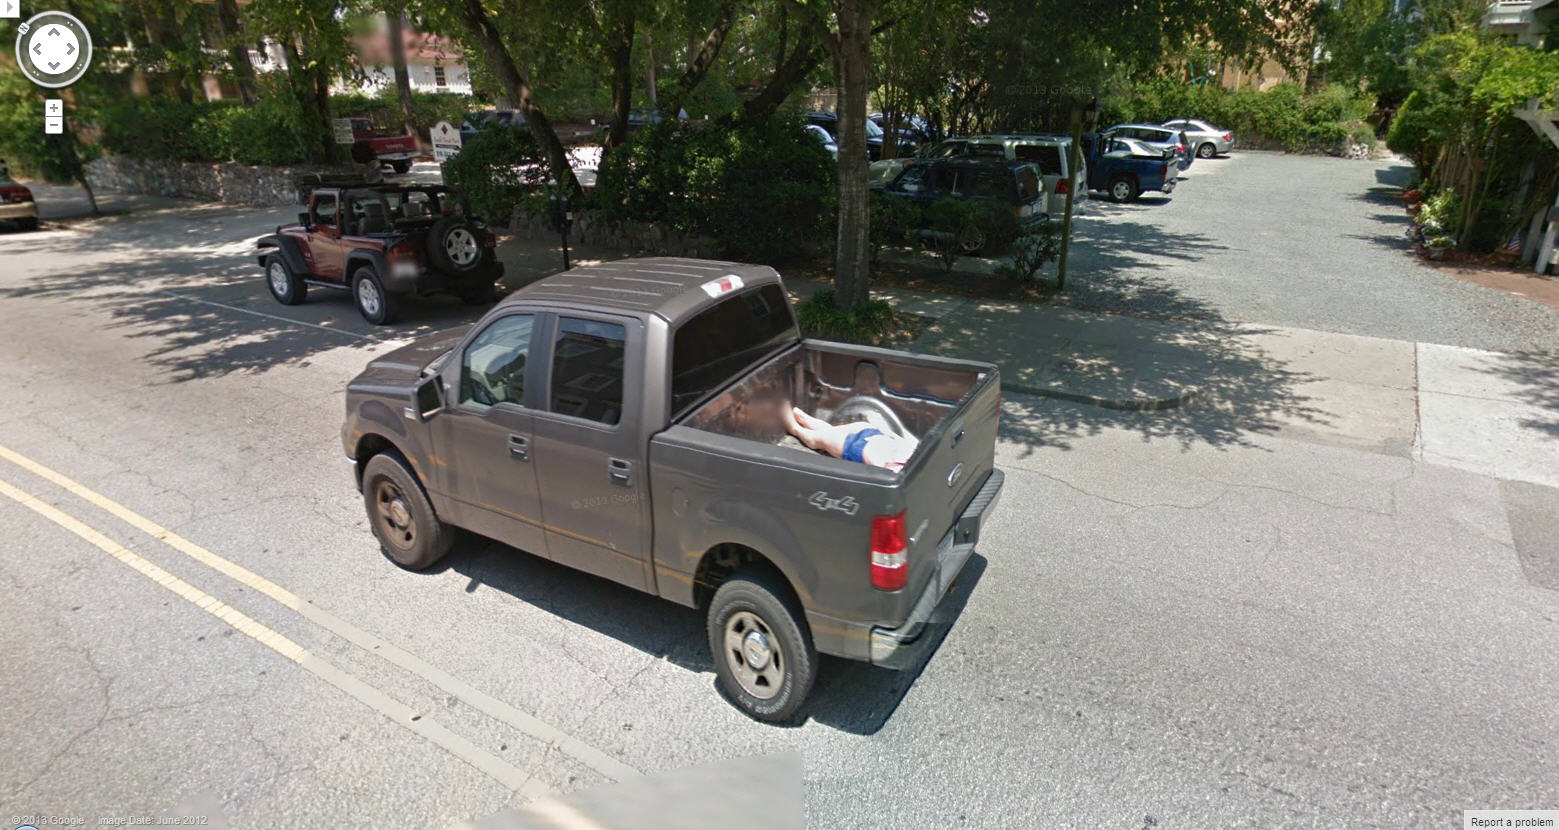 Google Street View Discovers a Dead Body in the Back of a Pickup!